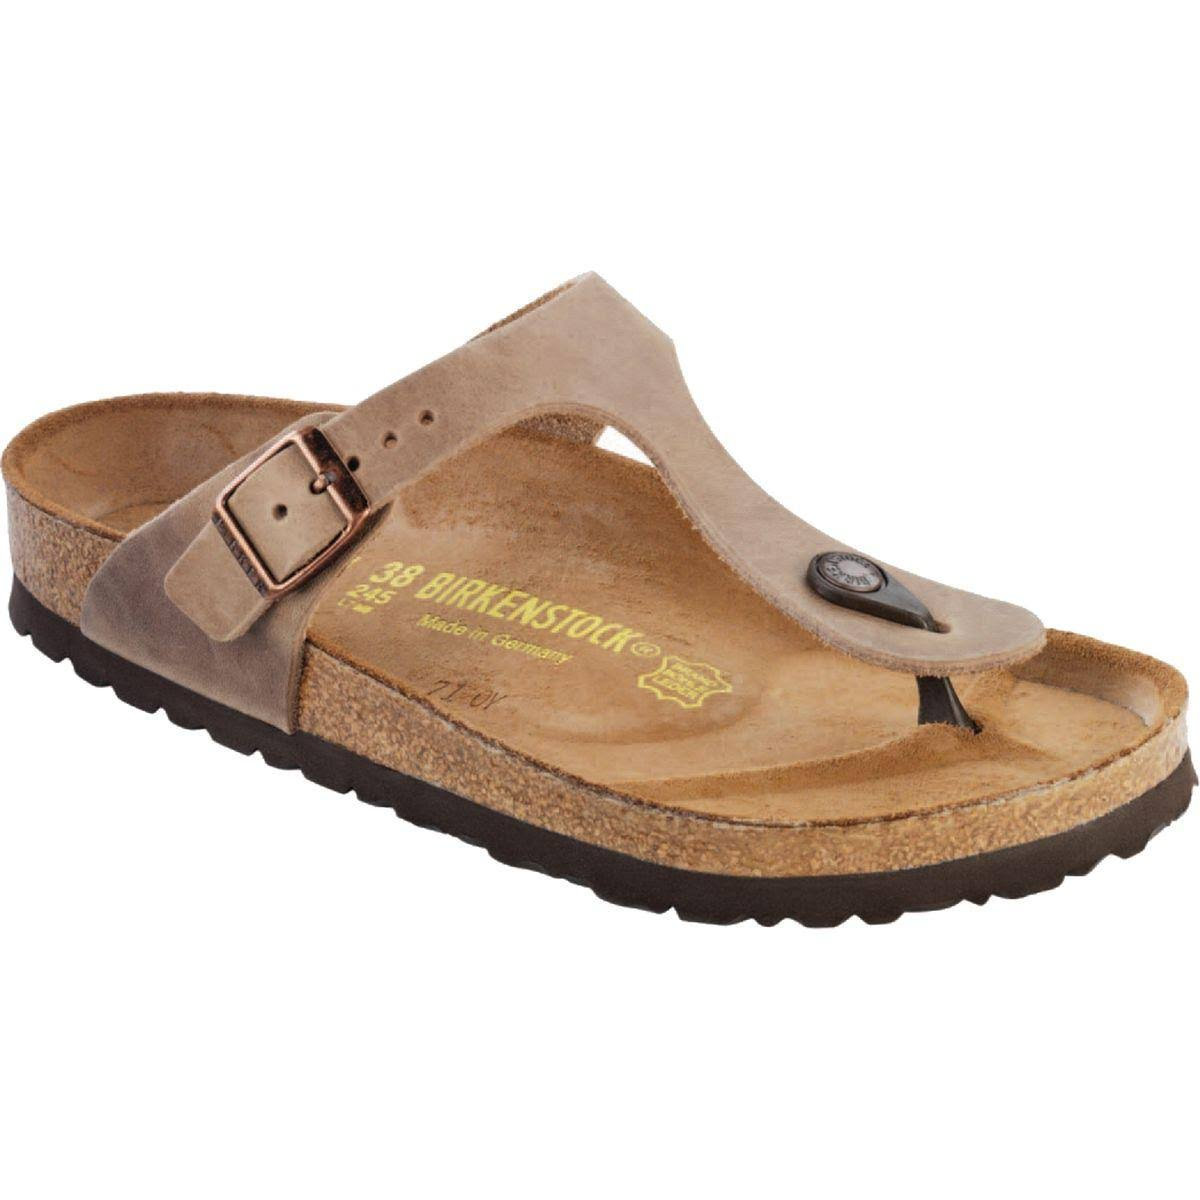 Birkenstock Women's Gizeh Sandals - Tobacco Oiled Leather, Size 6 US